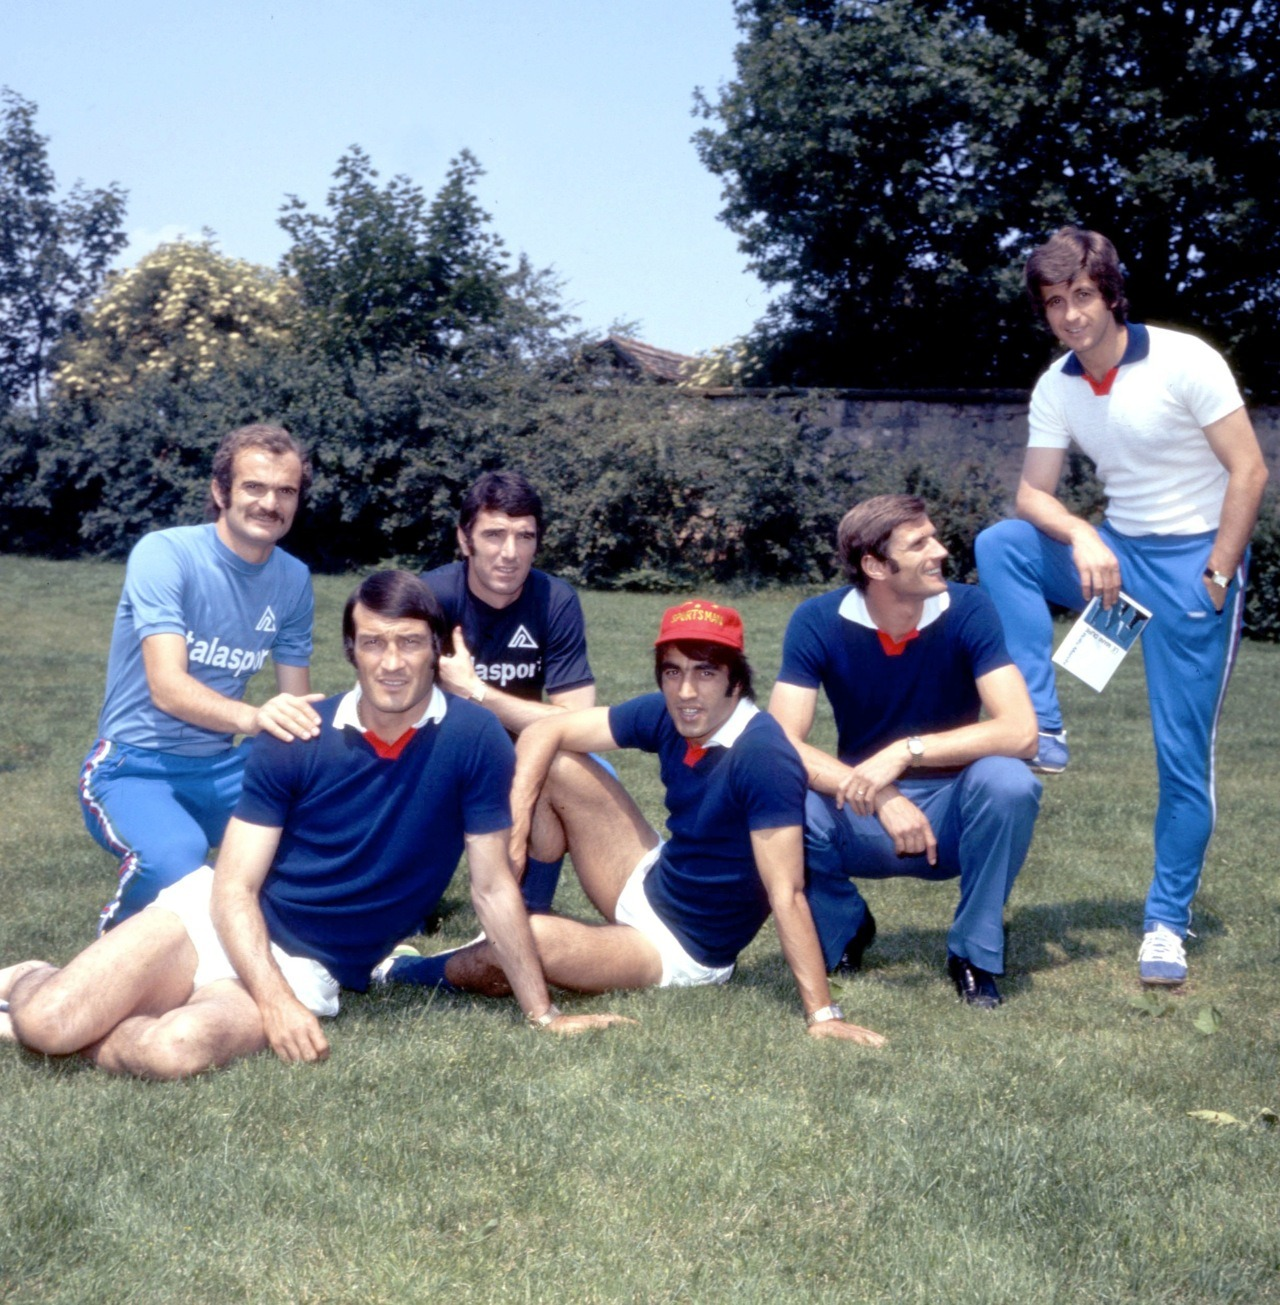 Mazzola, Albertosi, Zoff, Anastasi, Facchetti and Rivera, relaxing during World Cup 1974.